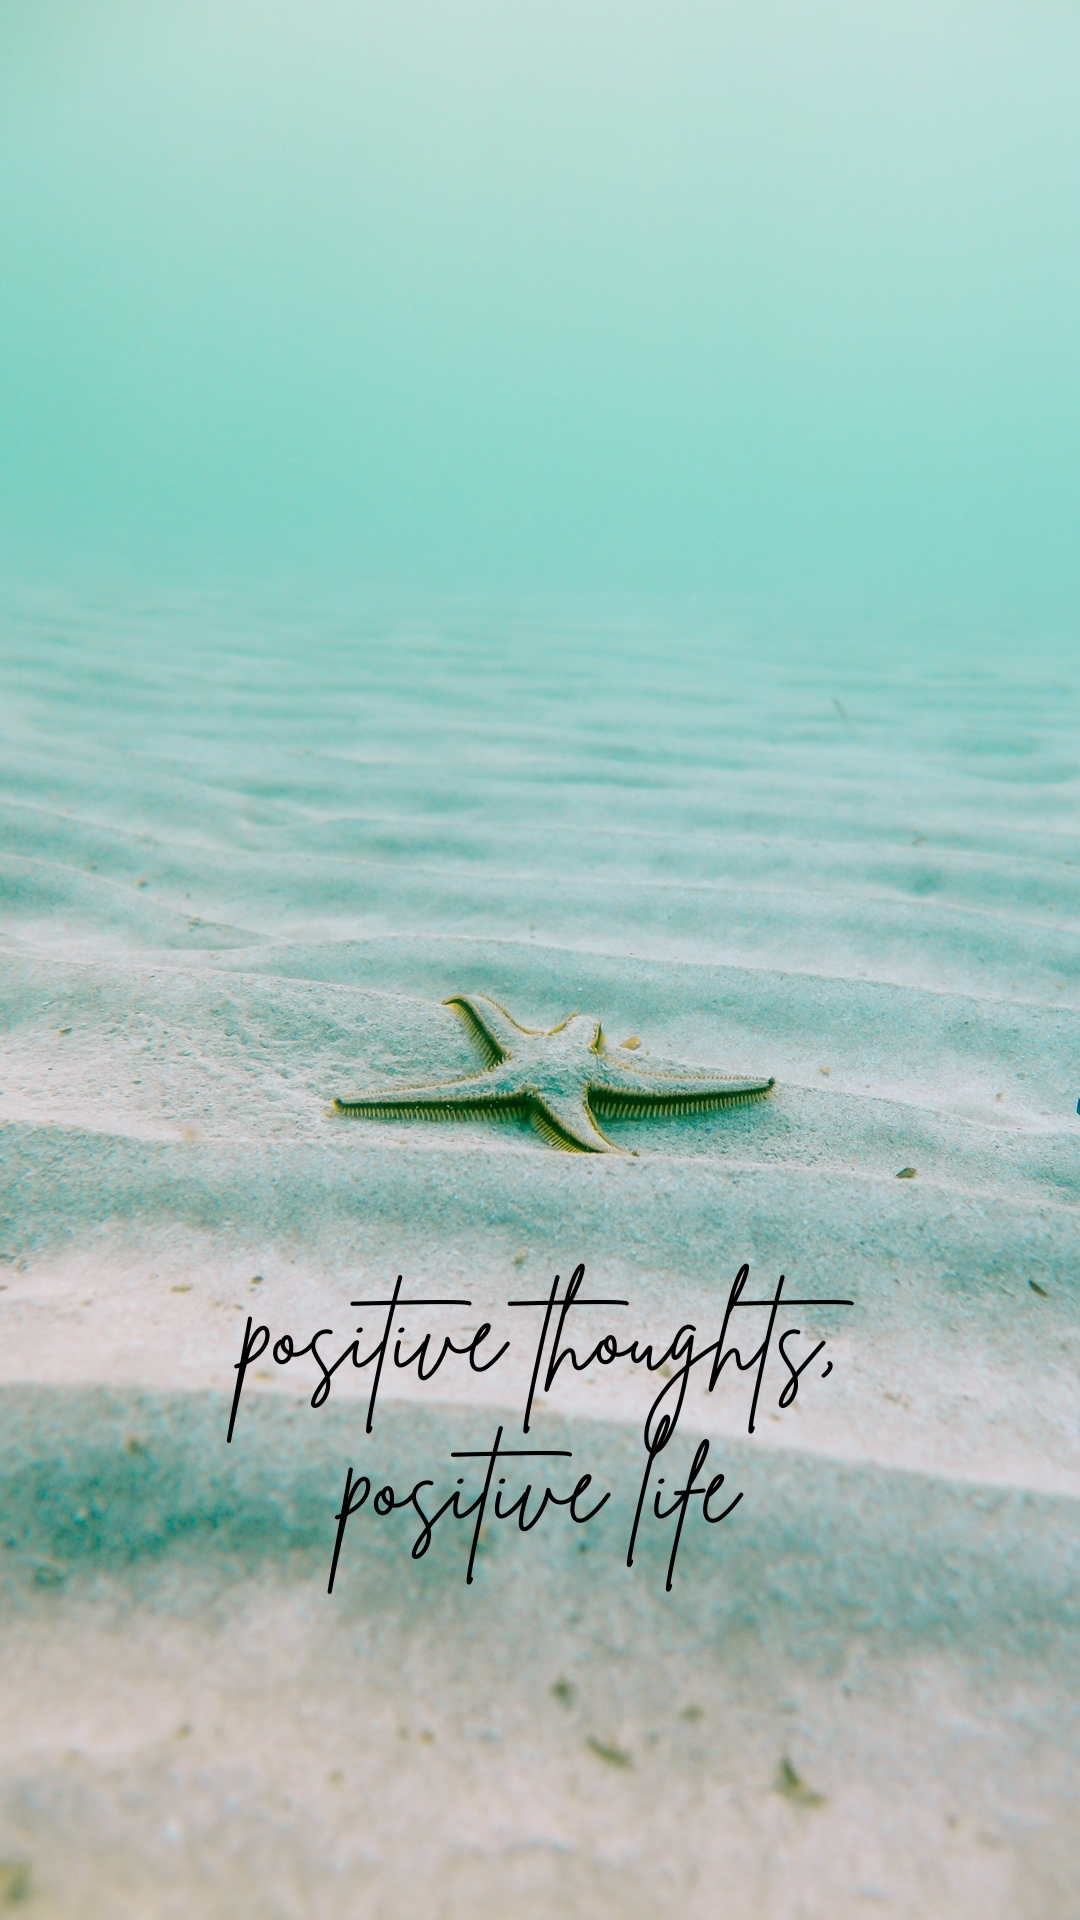 Positive Quote Wallpapers For iPhone: Positive Thoughts, Positive Life